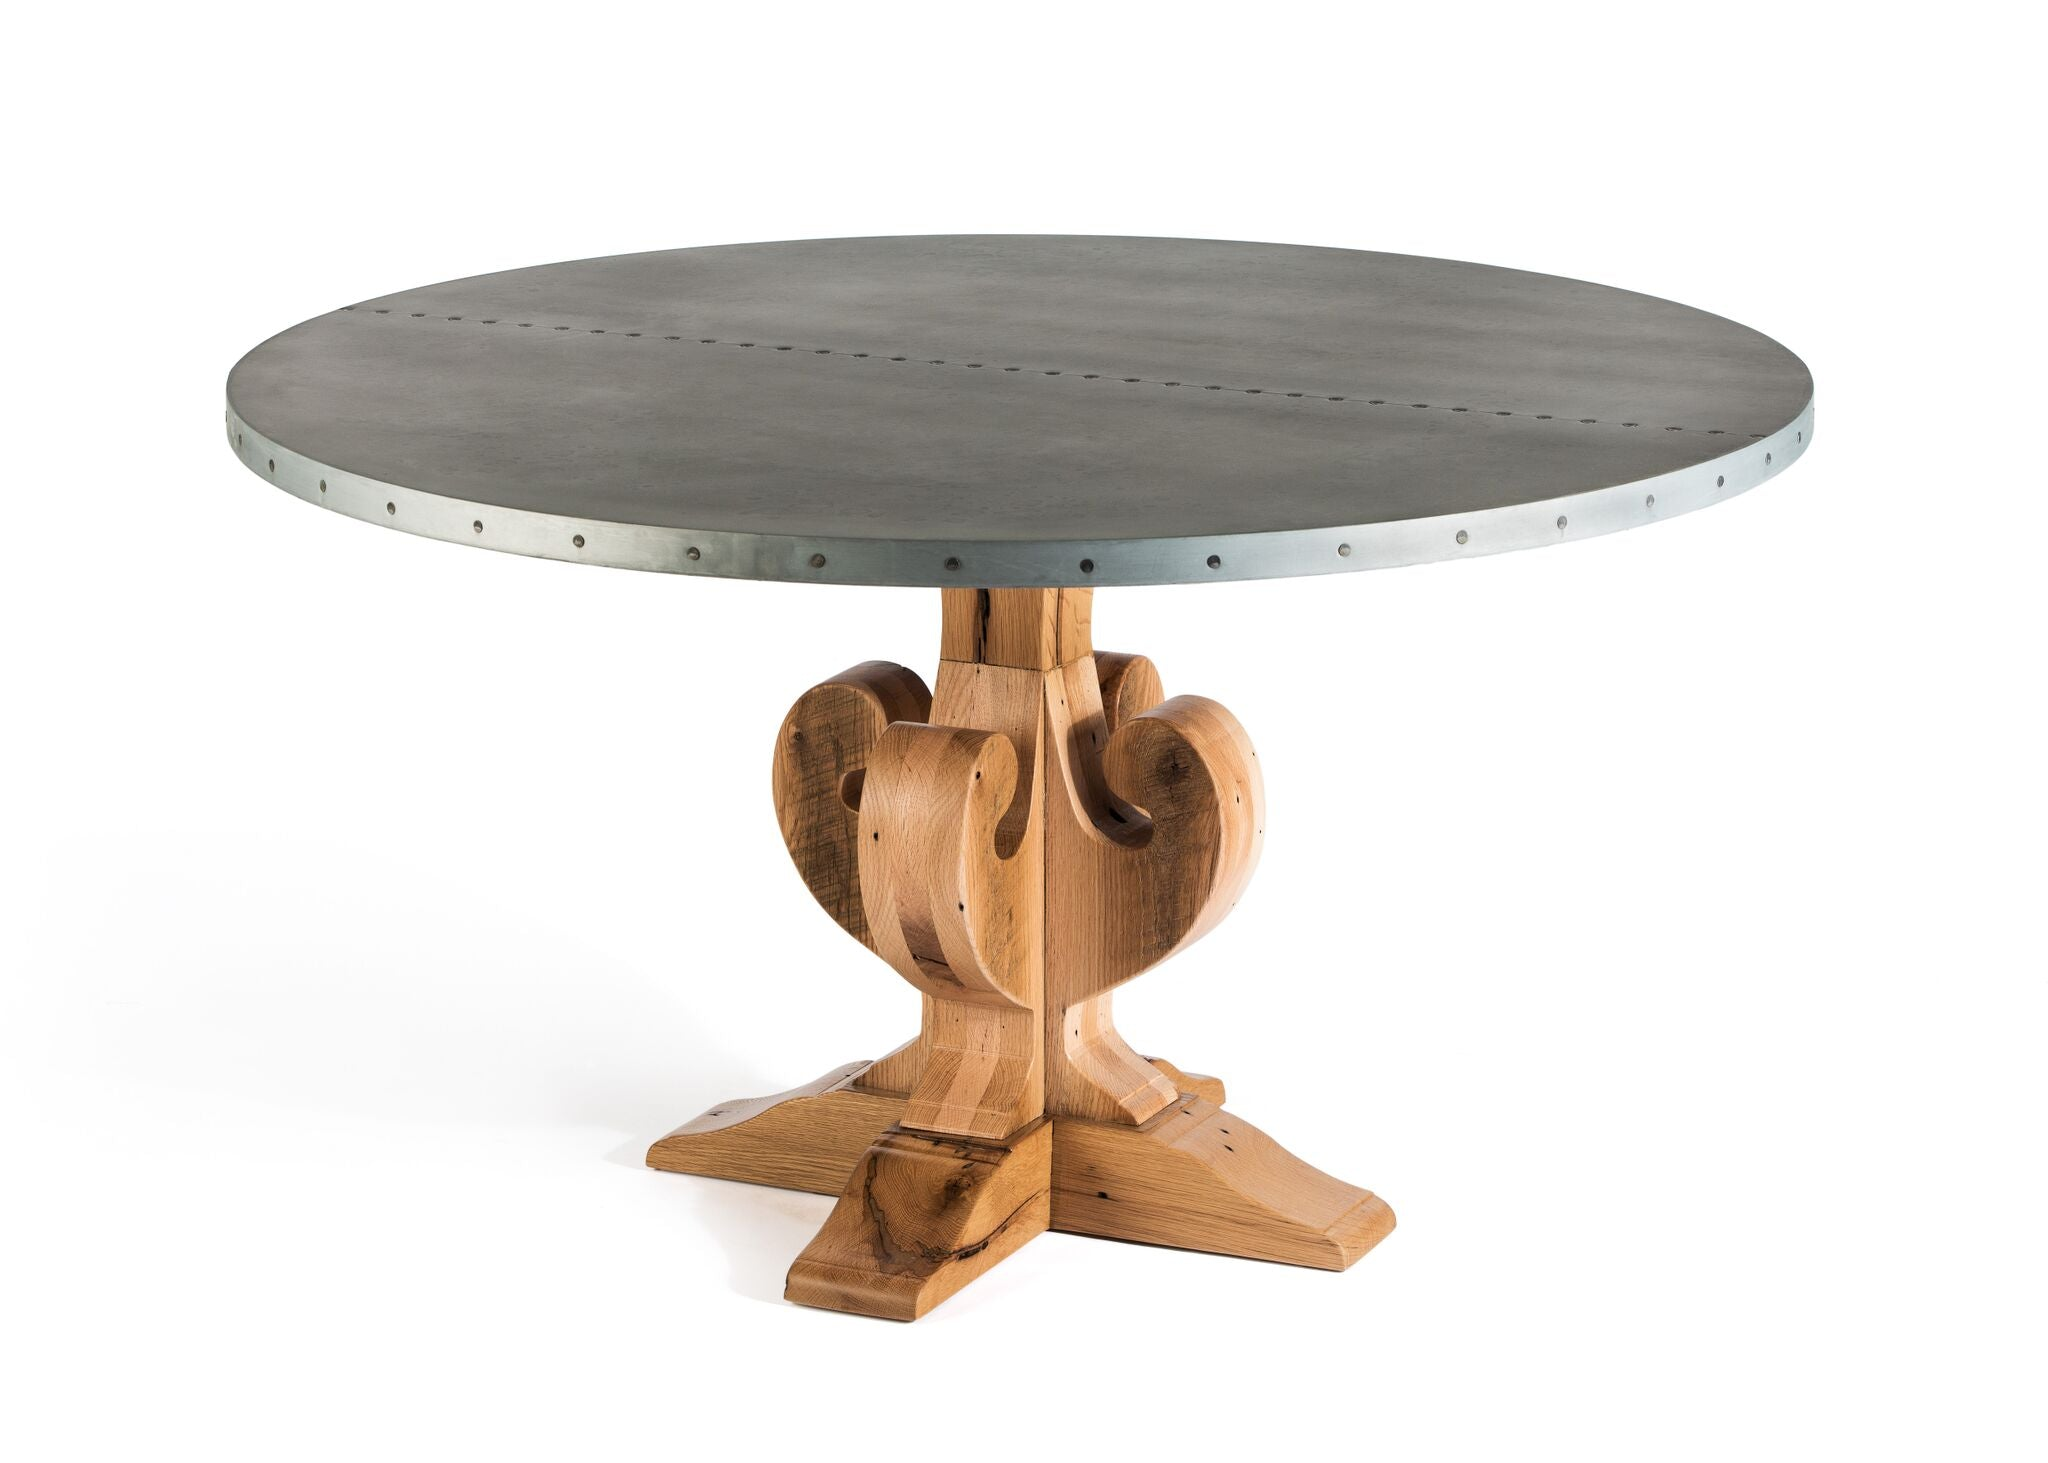 Fairfield Trestle Table kingston-krafts-zinc-tables.